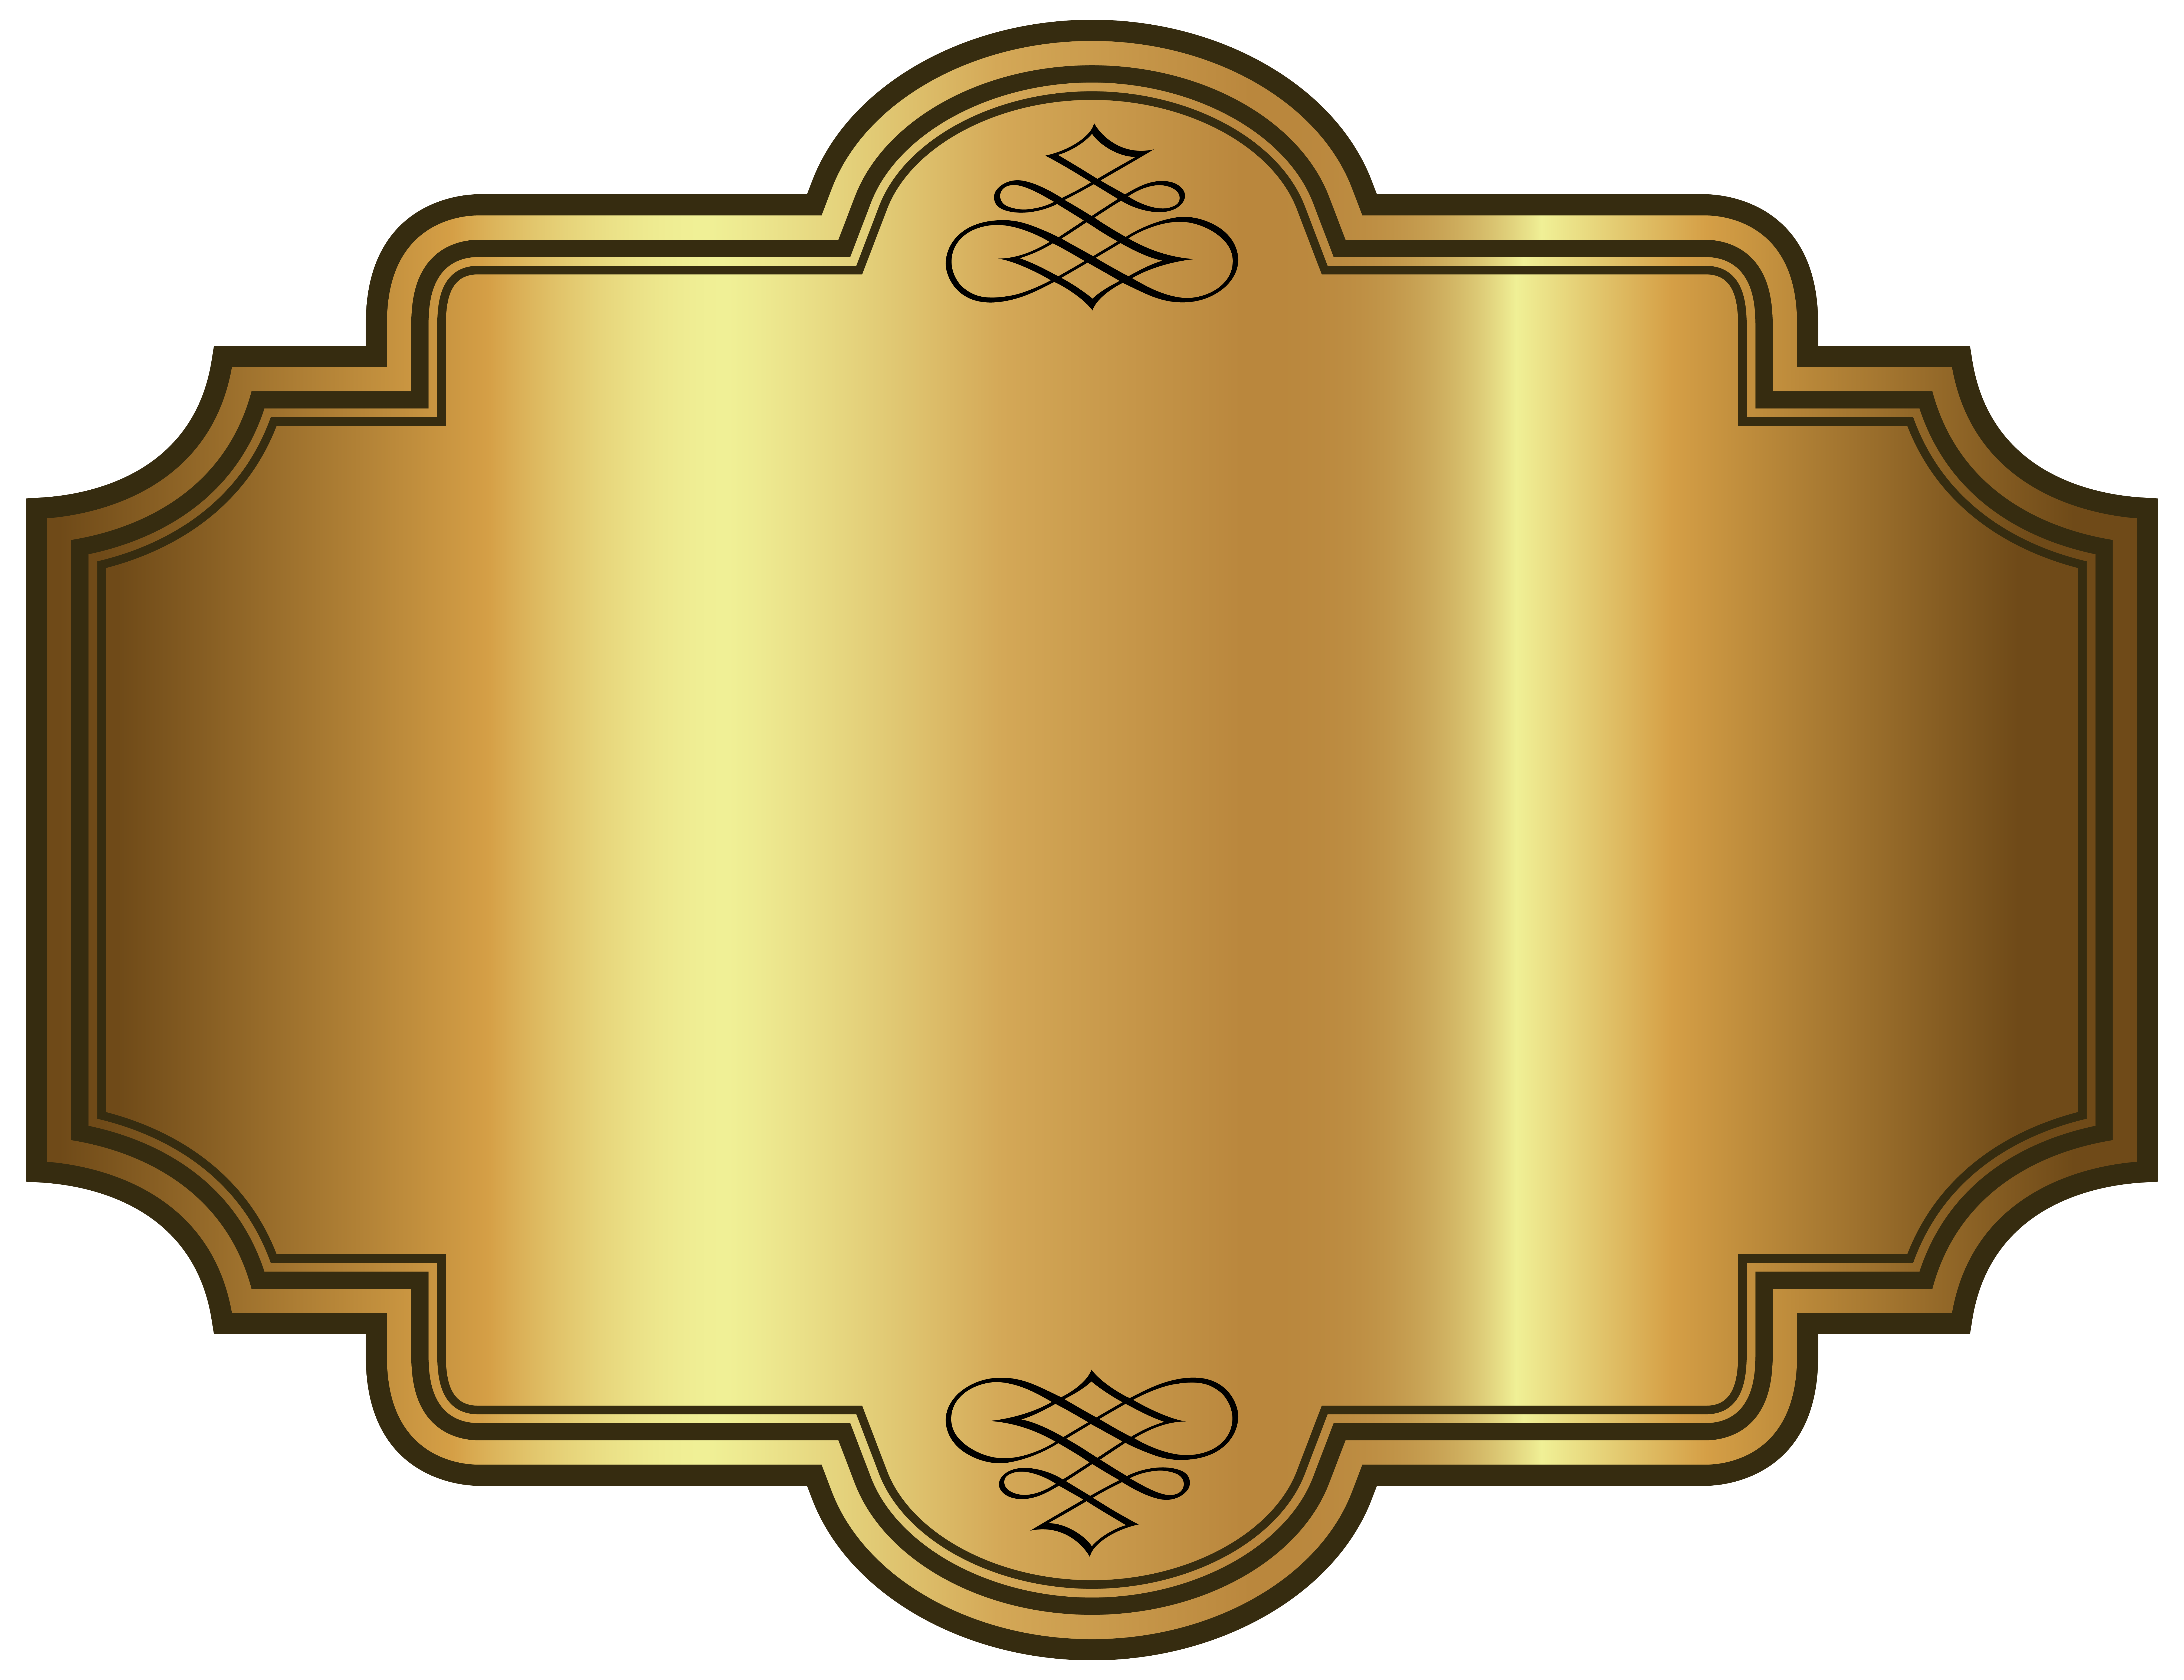 Golden luxury label picture. Photo clipart template